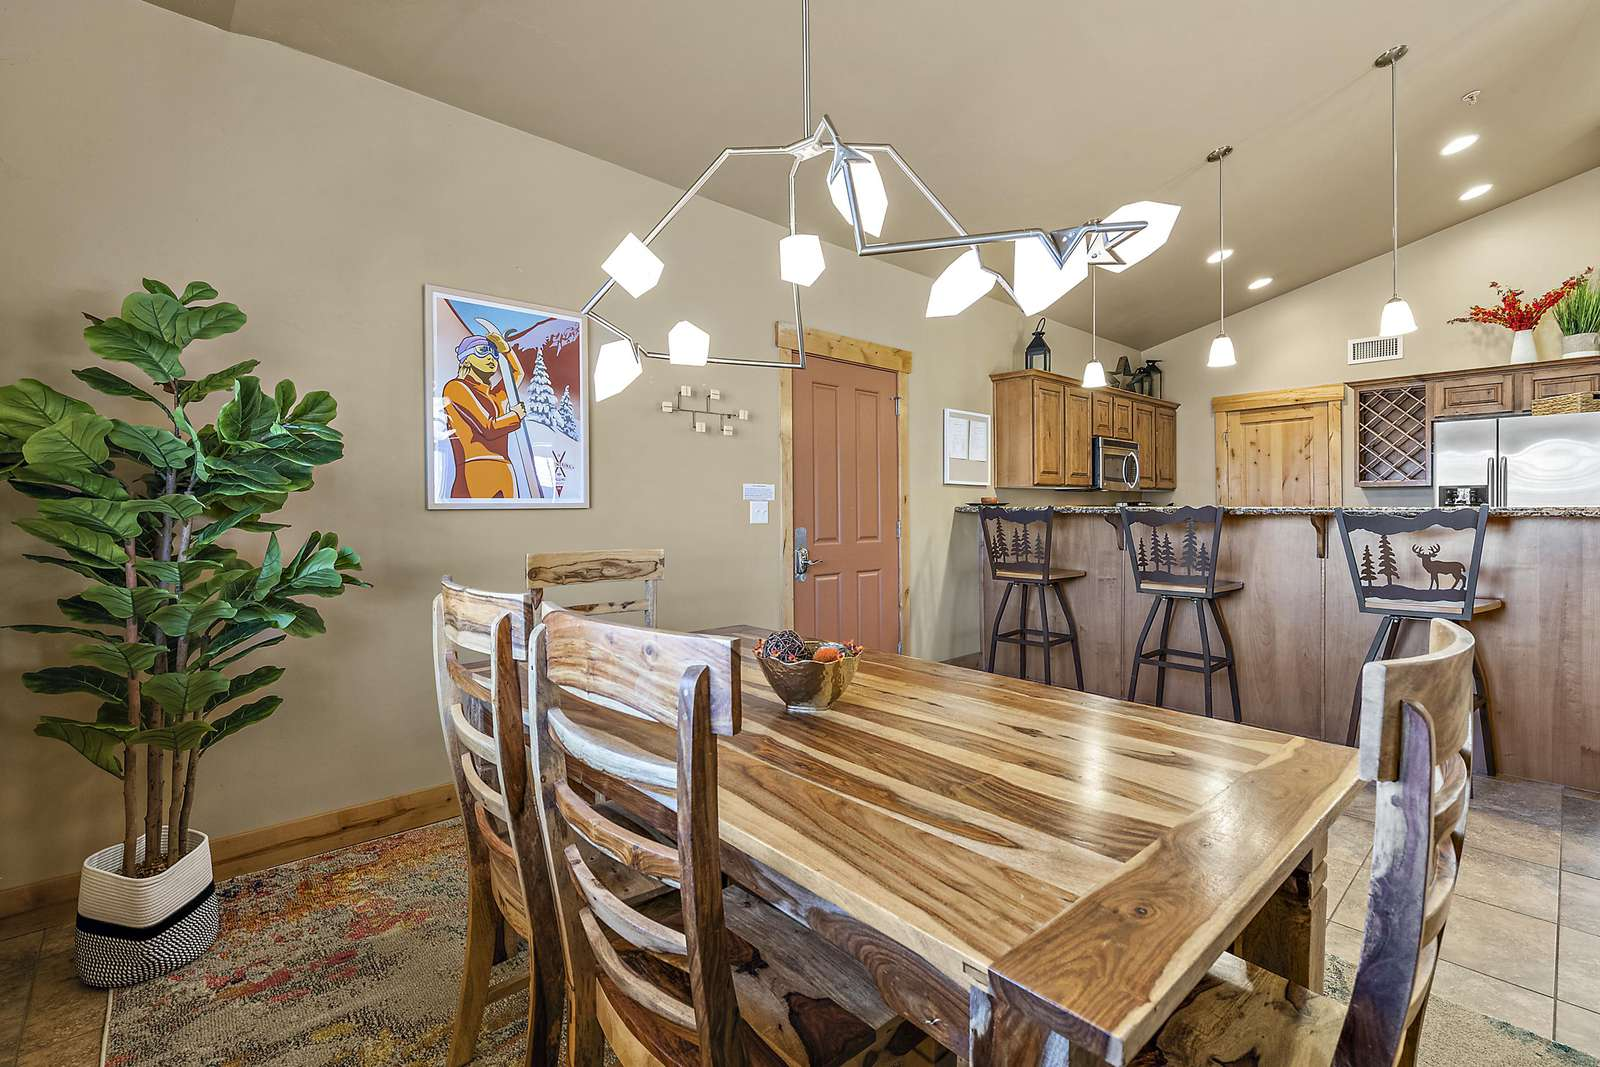 Attractive dining area next to kitchen